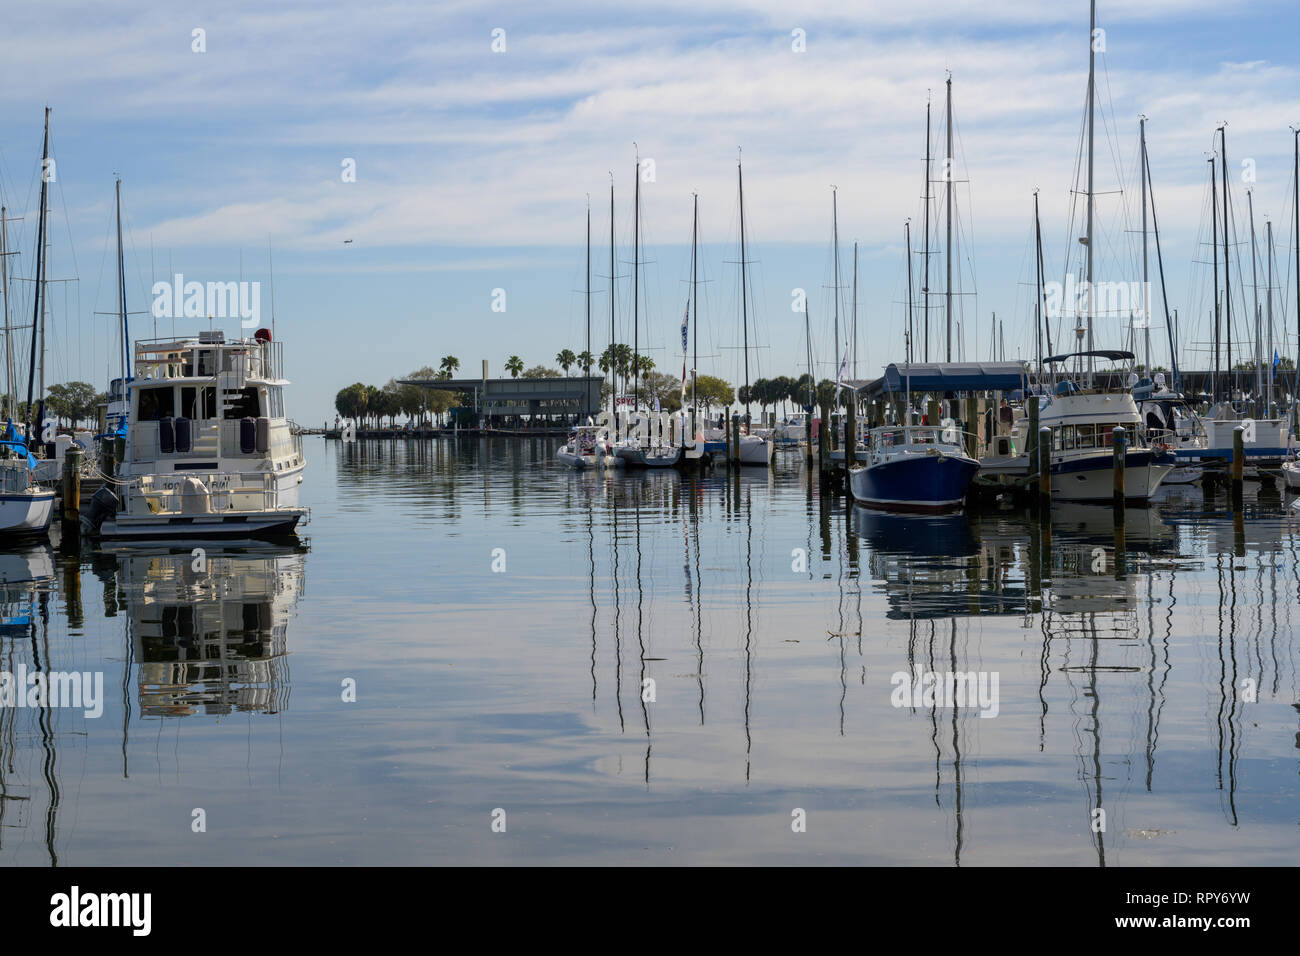 St Petersburg, FL, USA --February 15, 2019.  Boats are moored in a Florida marina on a February morning. - Stock Image